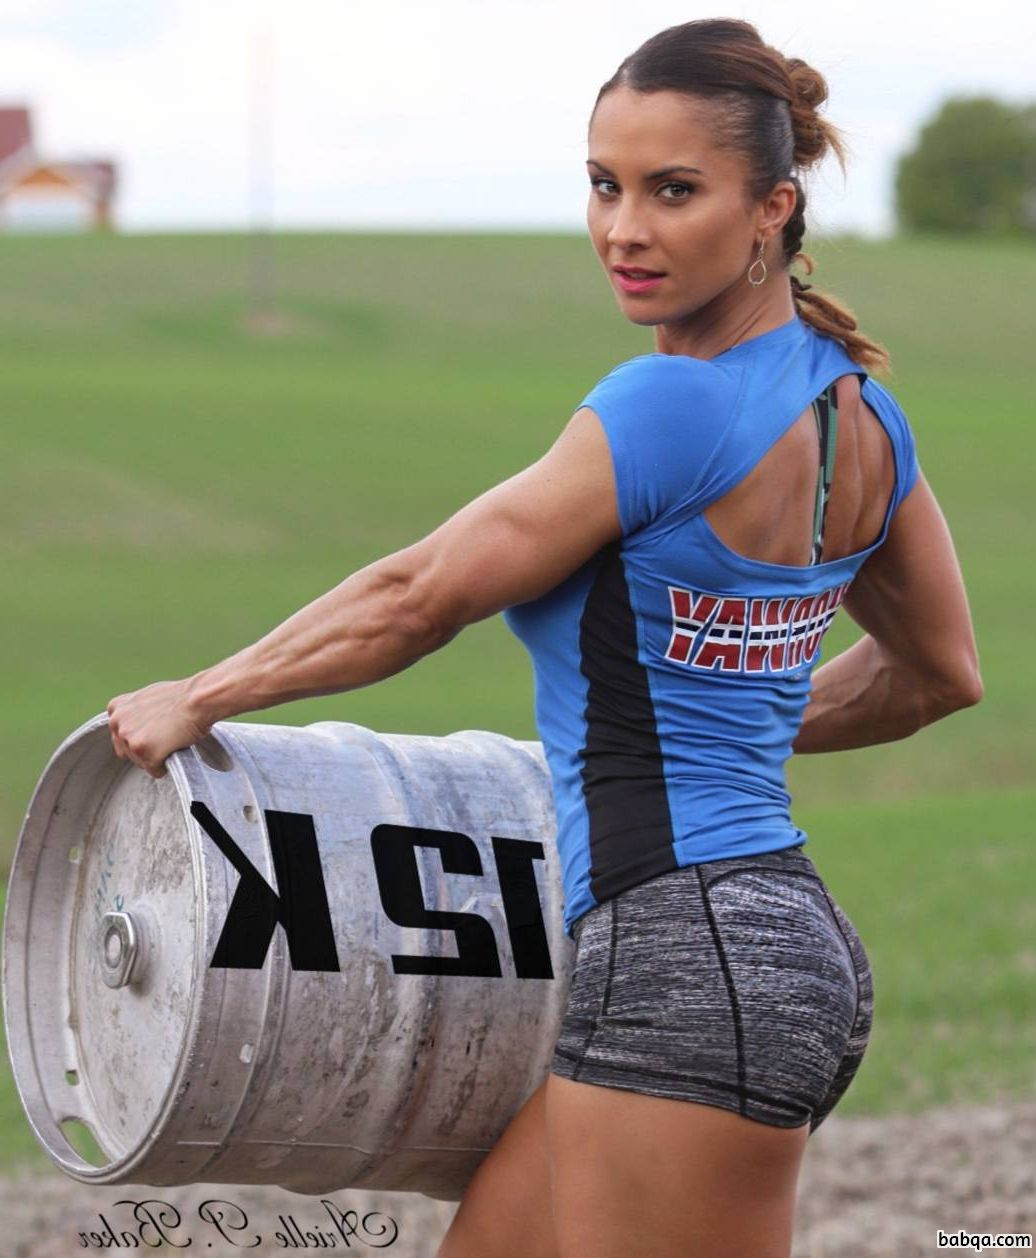 perfect babe with strong body and muscle legs post from g+